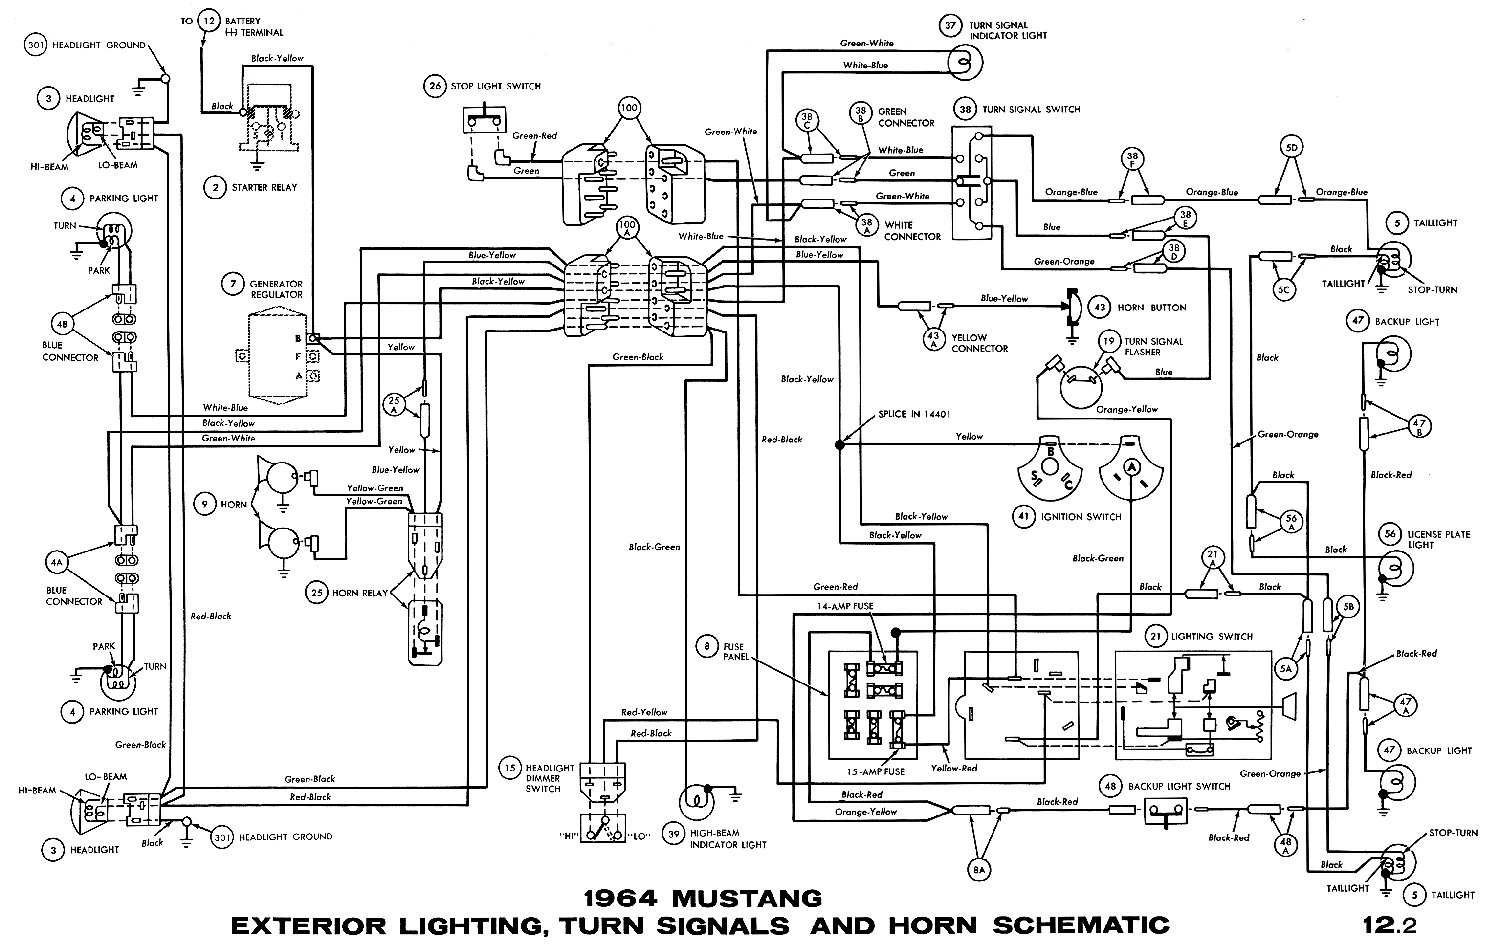 hight resolution of 1964 mustang wiring diagrams average joe restoration 1964 buick riviera wiring diagrams 1964 ford mustang wiring